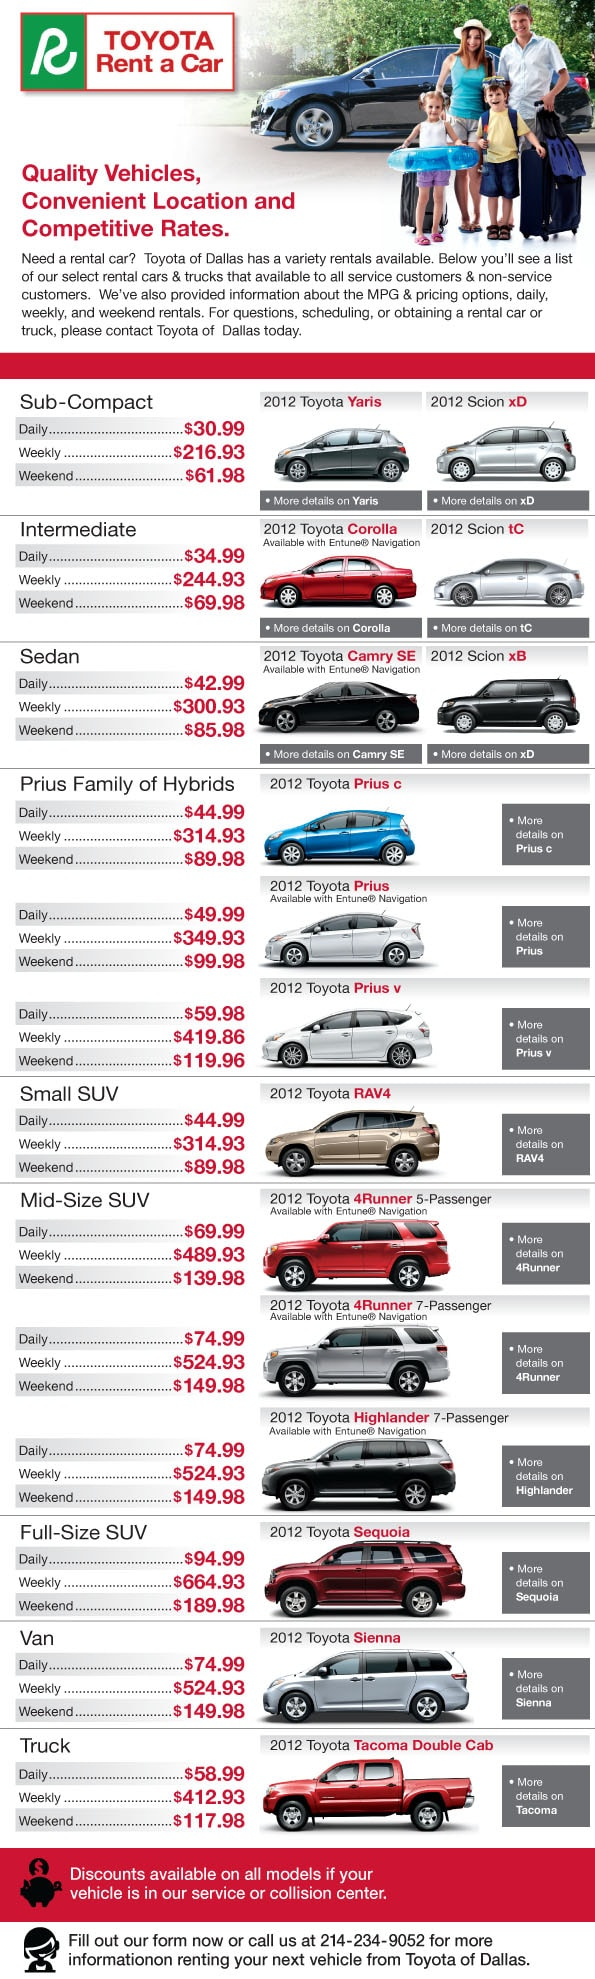 Toyota Cars Pictures And Prices